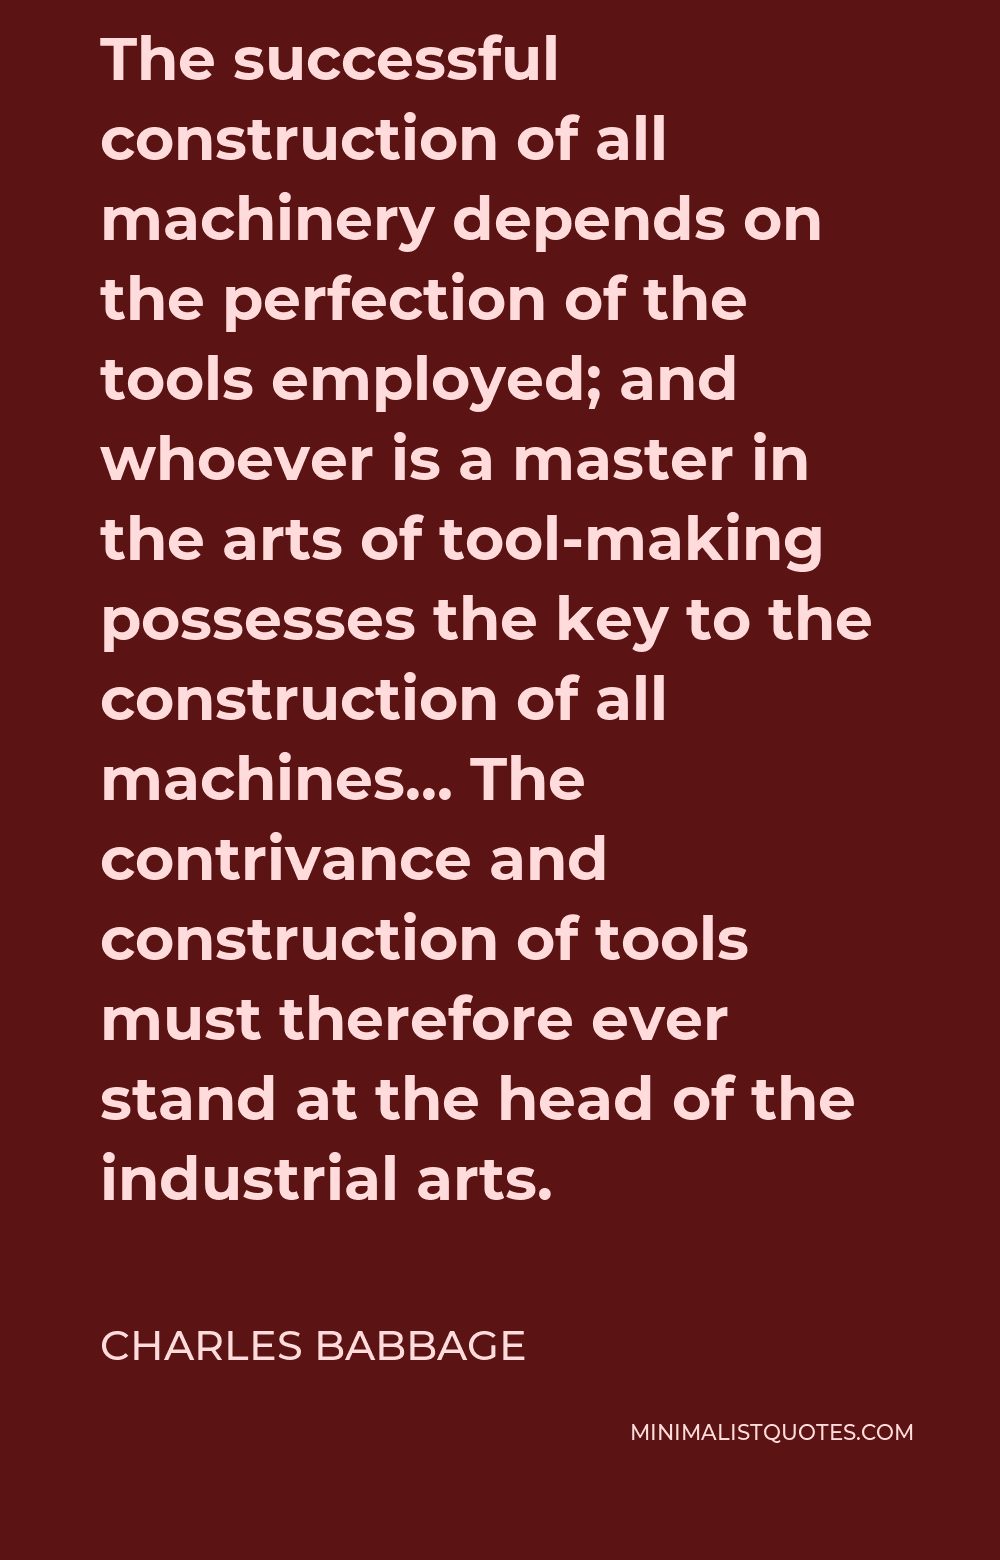 Charles Babbage Quote - The successful construction of all machinery depends on the perfection of the tools employed; and whoever is a master in the arts of tool-making possesses the key to the construction of all machines… The contrivance and construction of tools must therefore ever stand at the head of the industrial arts.